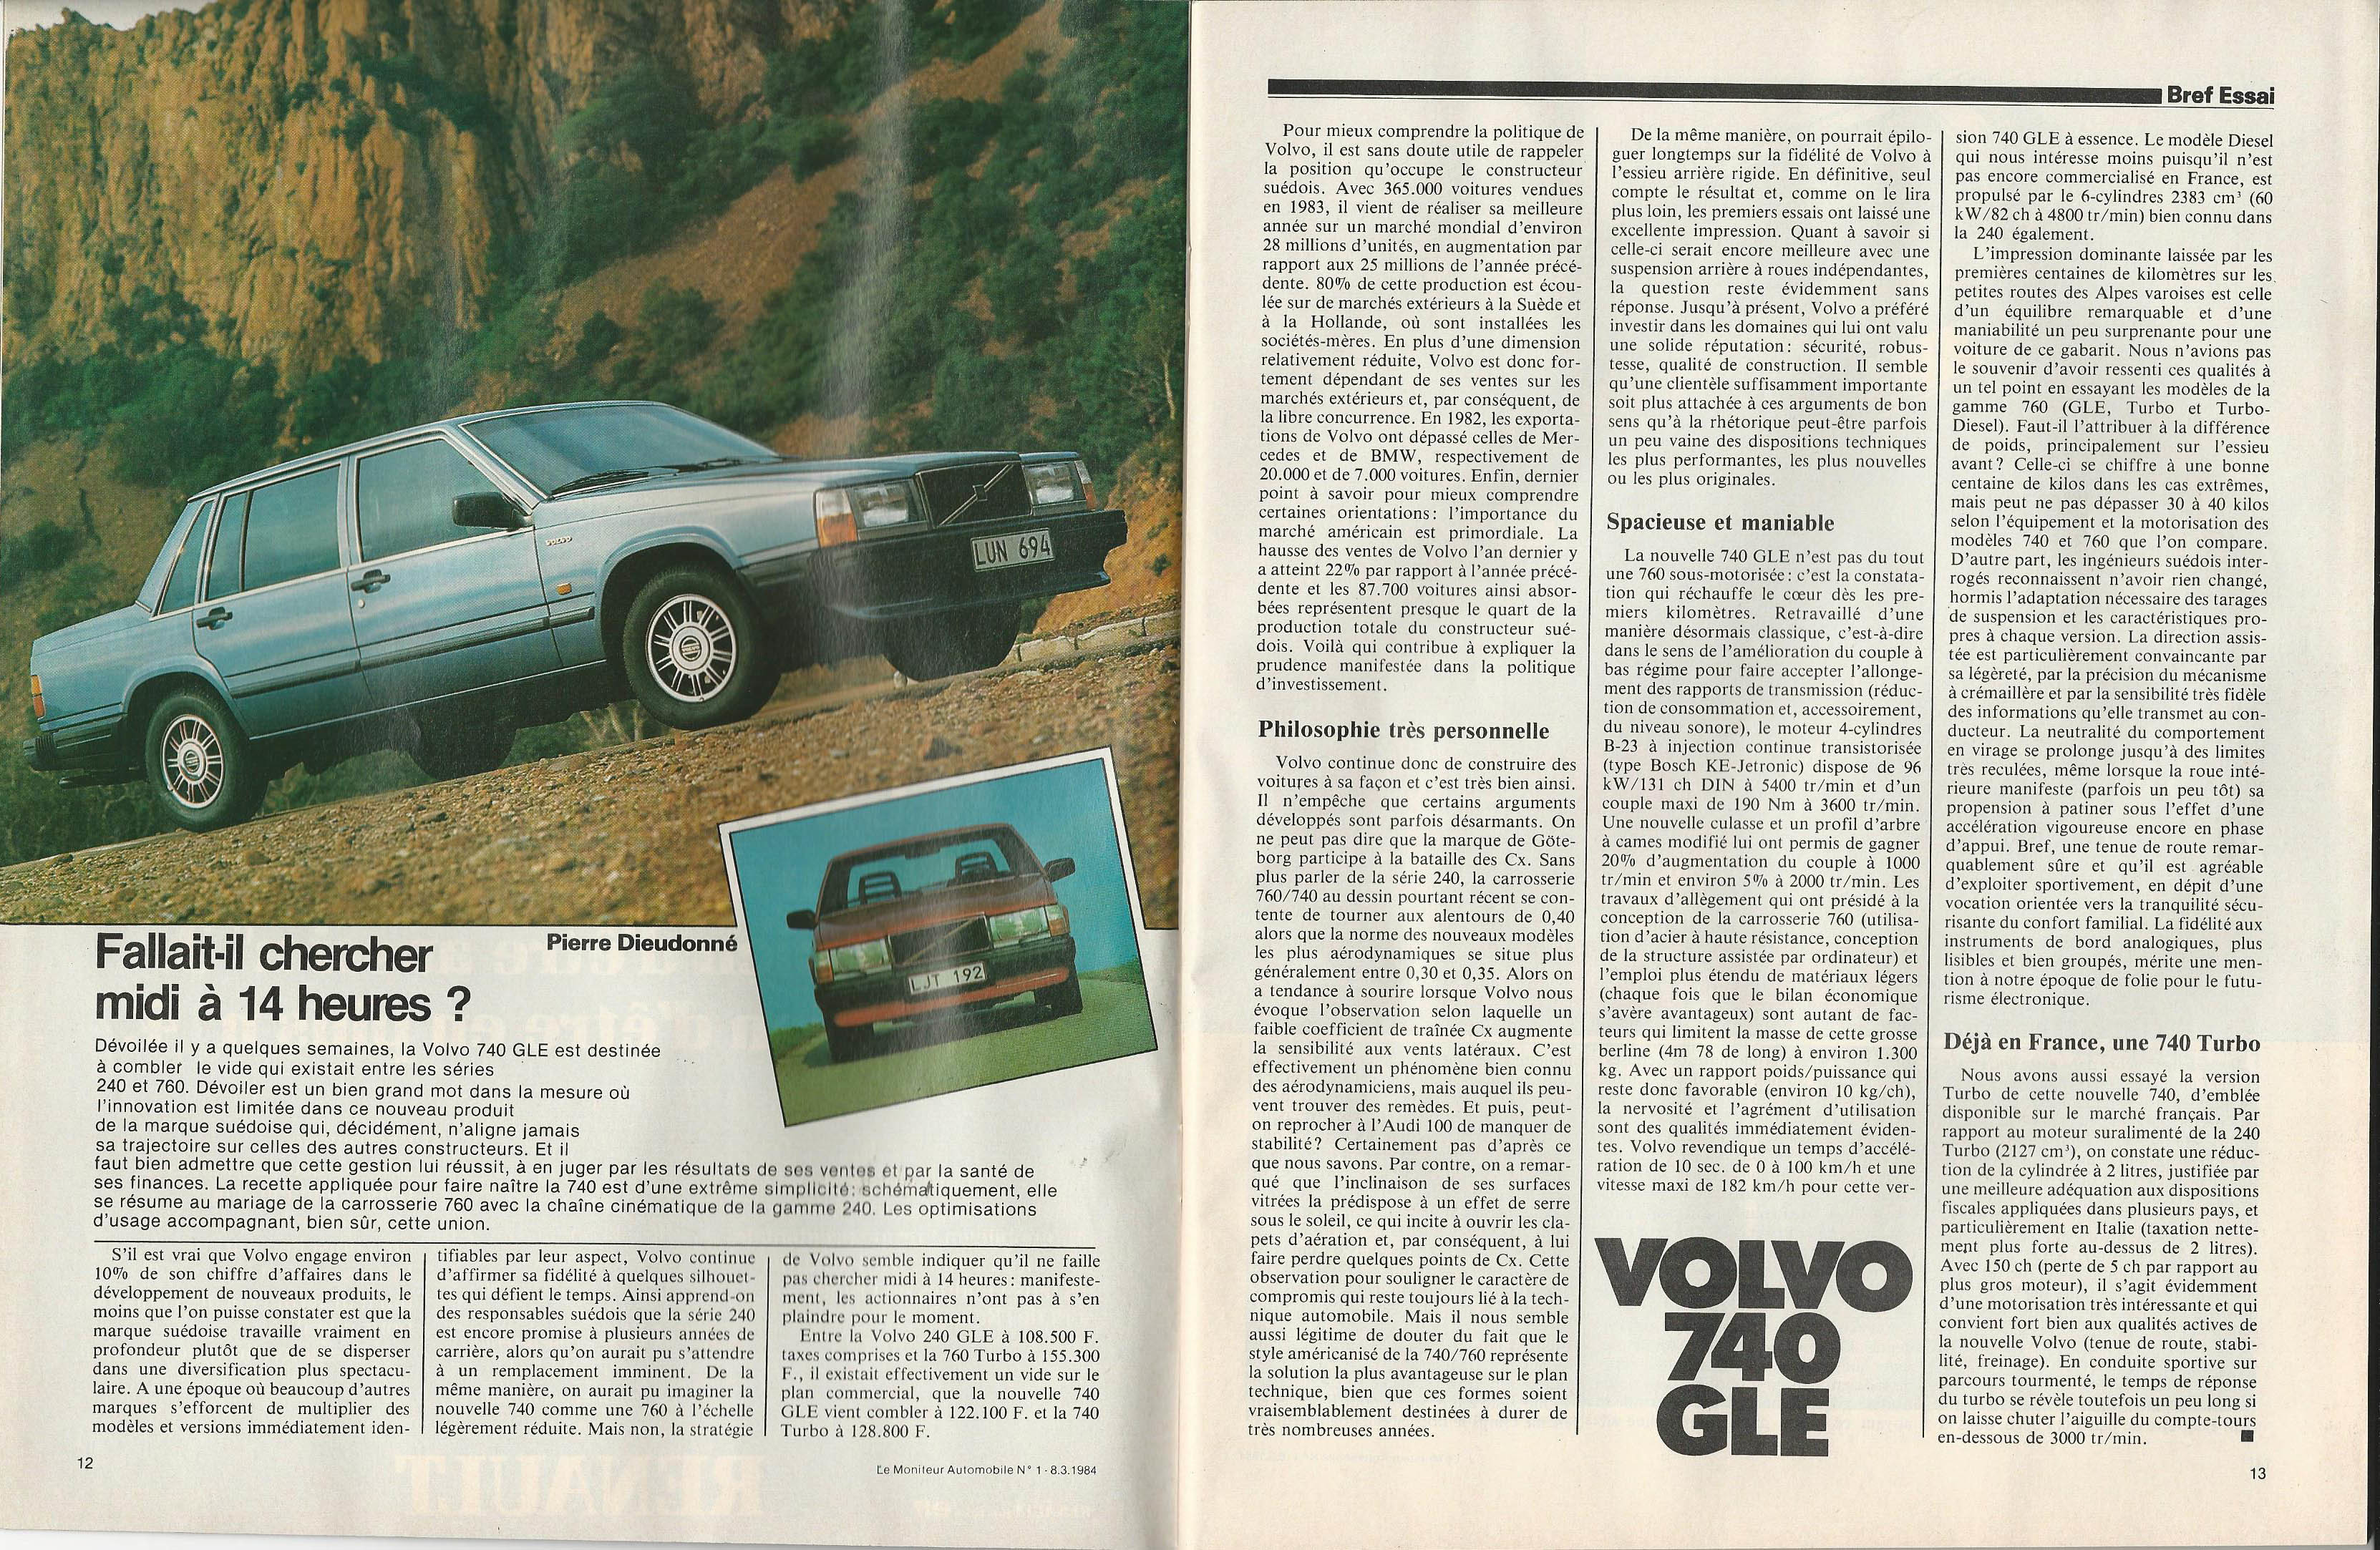 Moniteur Automobile 01 - 08 Mars 1984 (7)